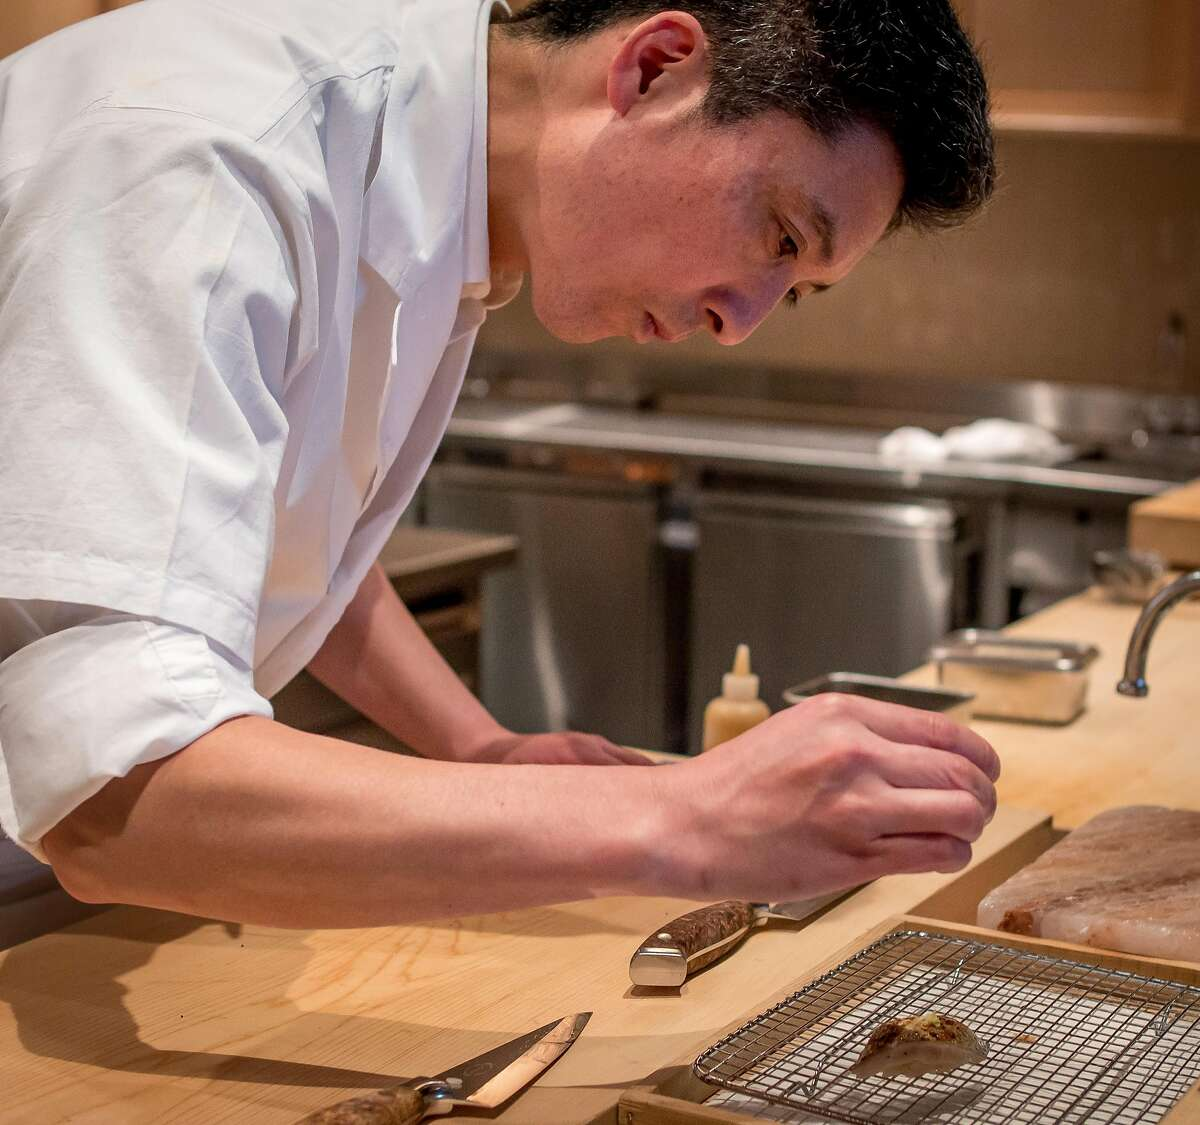 Chef Tokatoshi Toshi prepares sushi at Kinjo in San Francisco, Calif. on March 2nd, 2017.